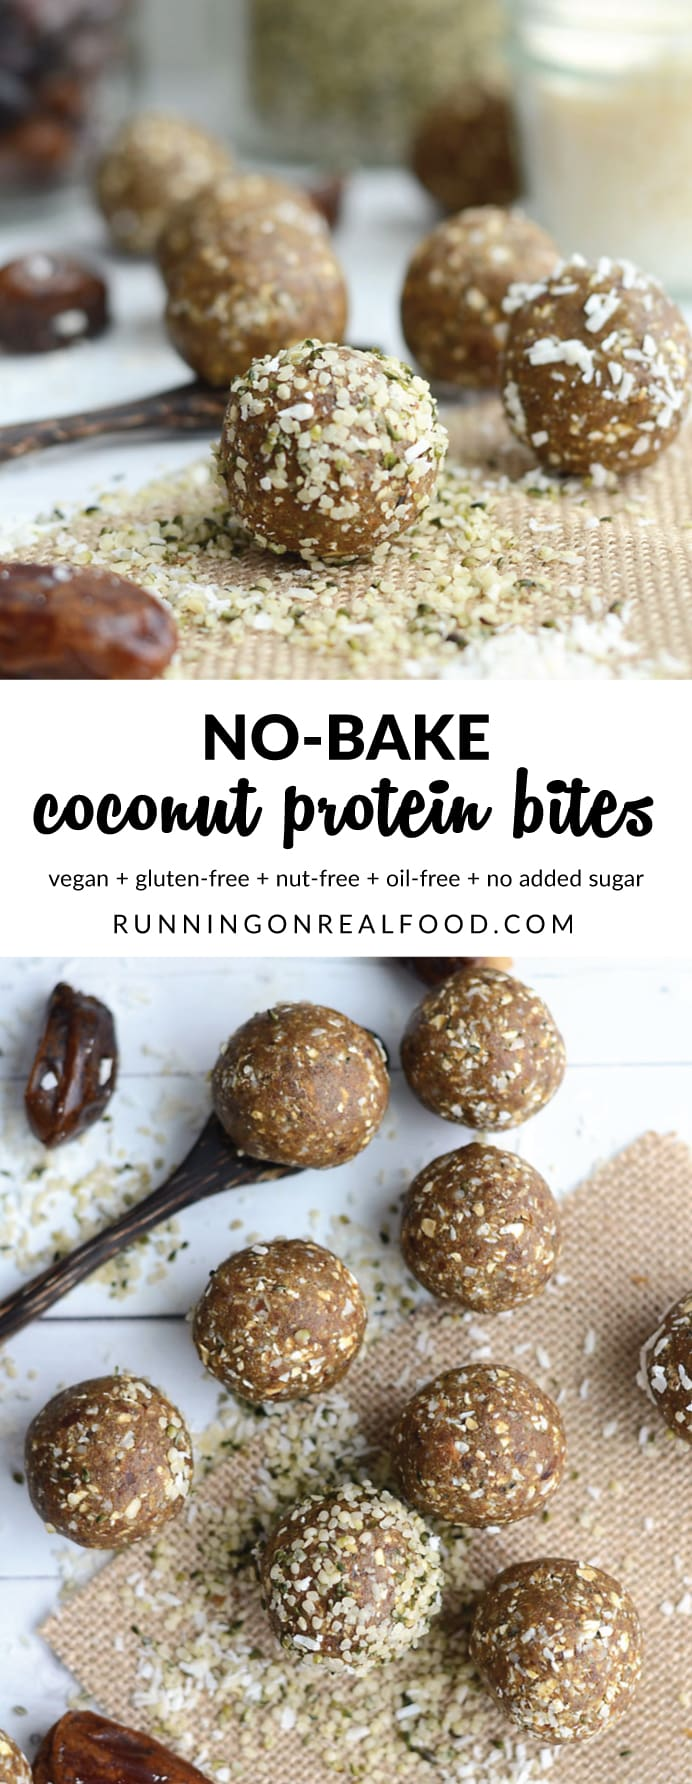 All you need is 5 minutes and these coconut protein bites will be ready to go. These make a great pre or post-workout snack for vegans. Gluten-free, nut-free.